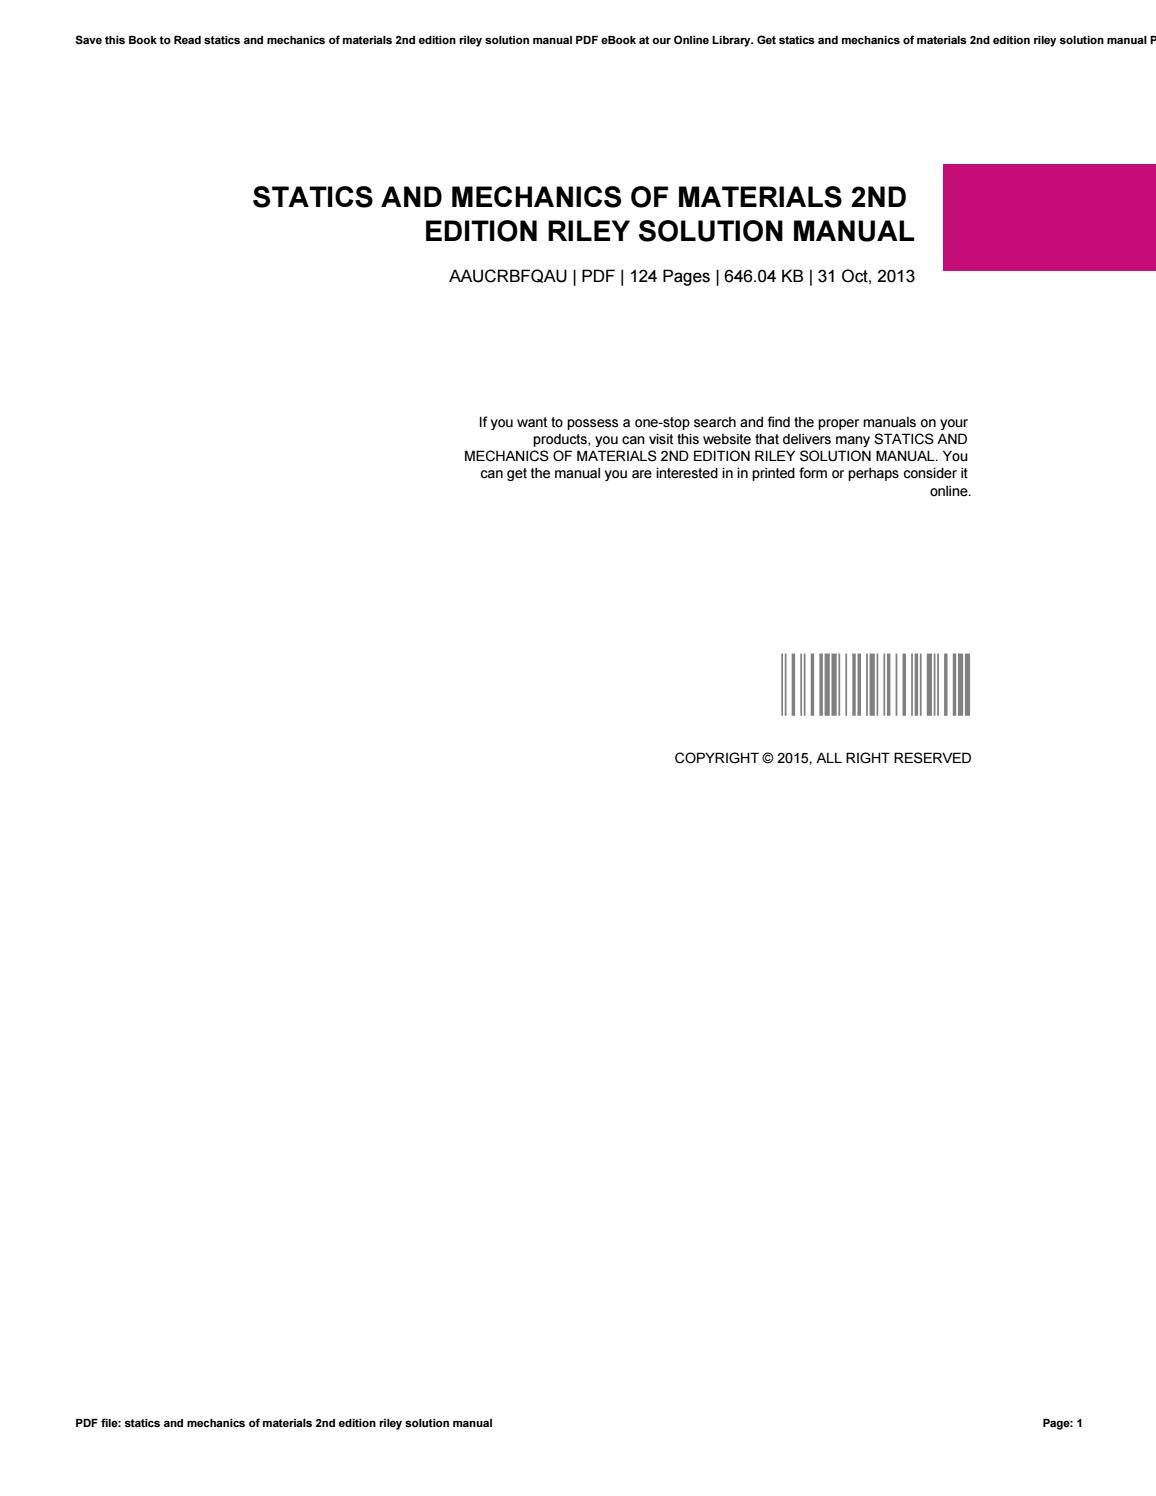 Statics and mechanics of materials 2nd edition riley solution manual by  DouglasBeall2818 - issuu